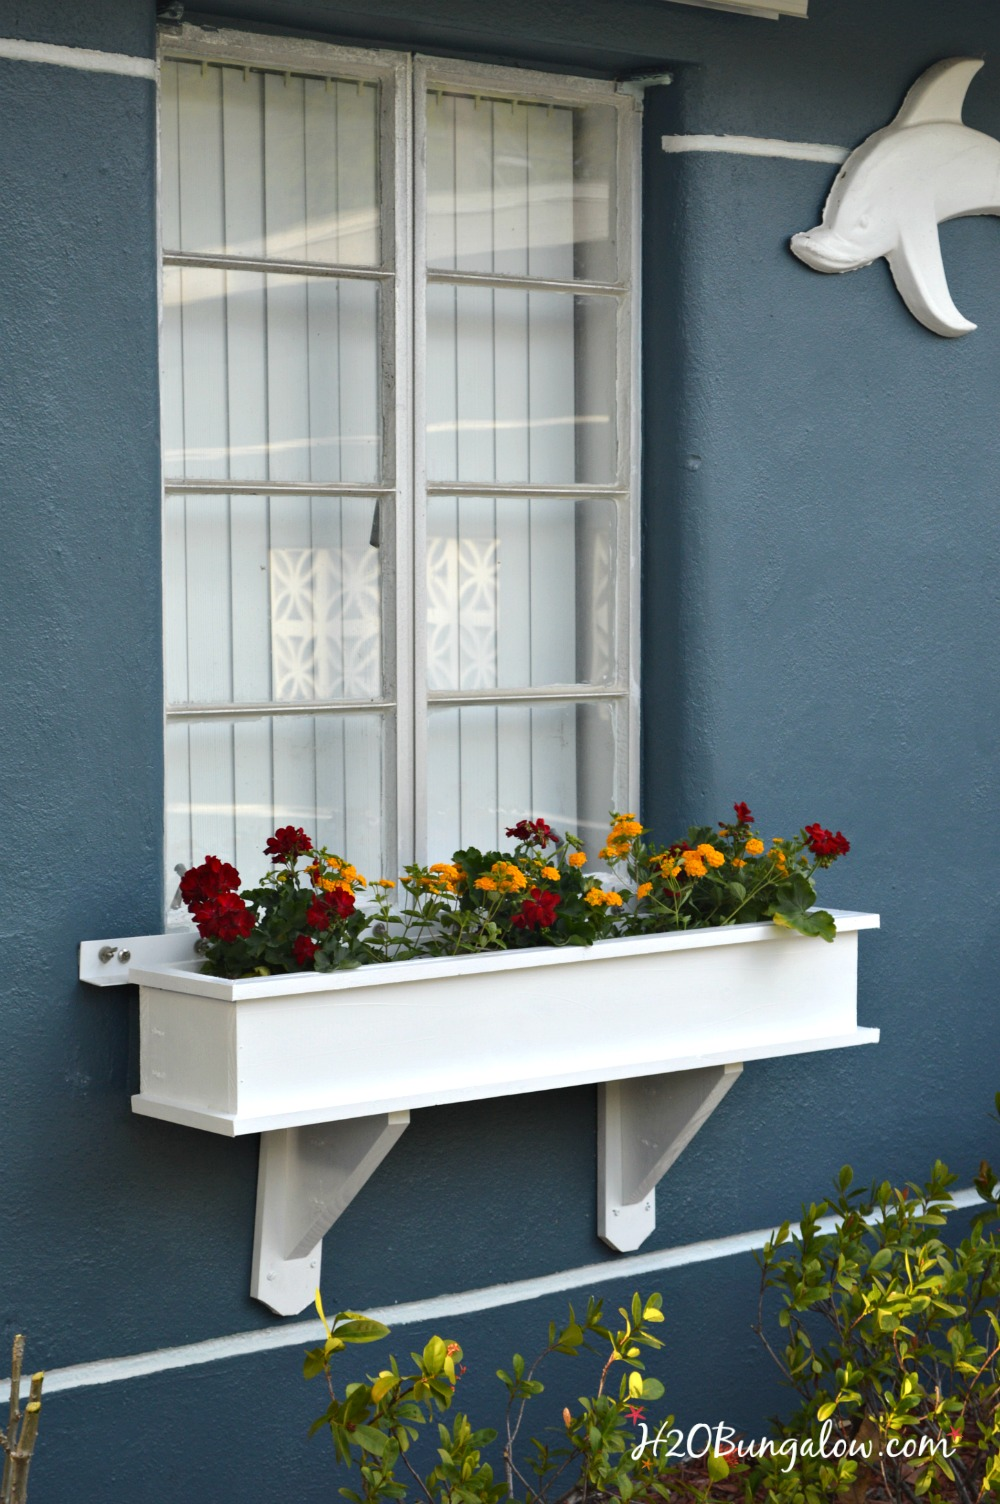 How To Build A Flower Box Planter Tutorial H20bungalow